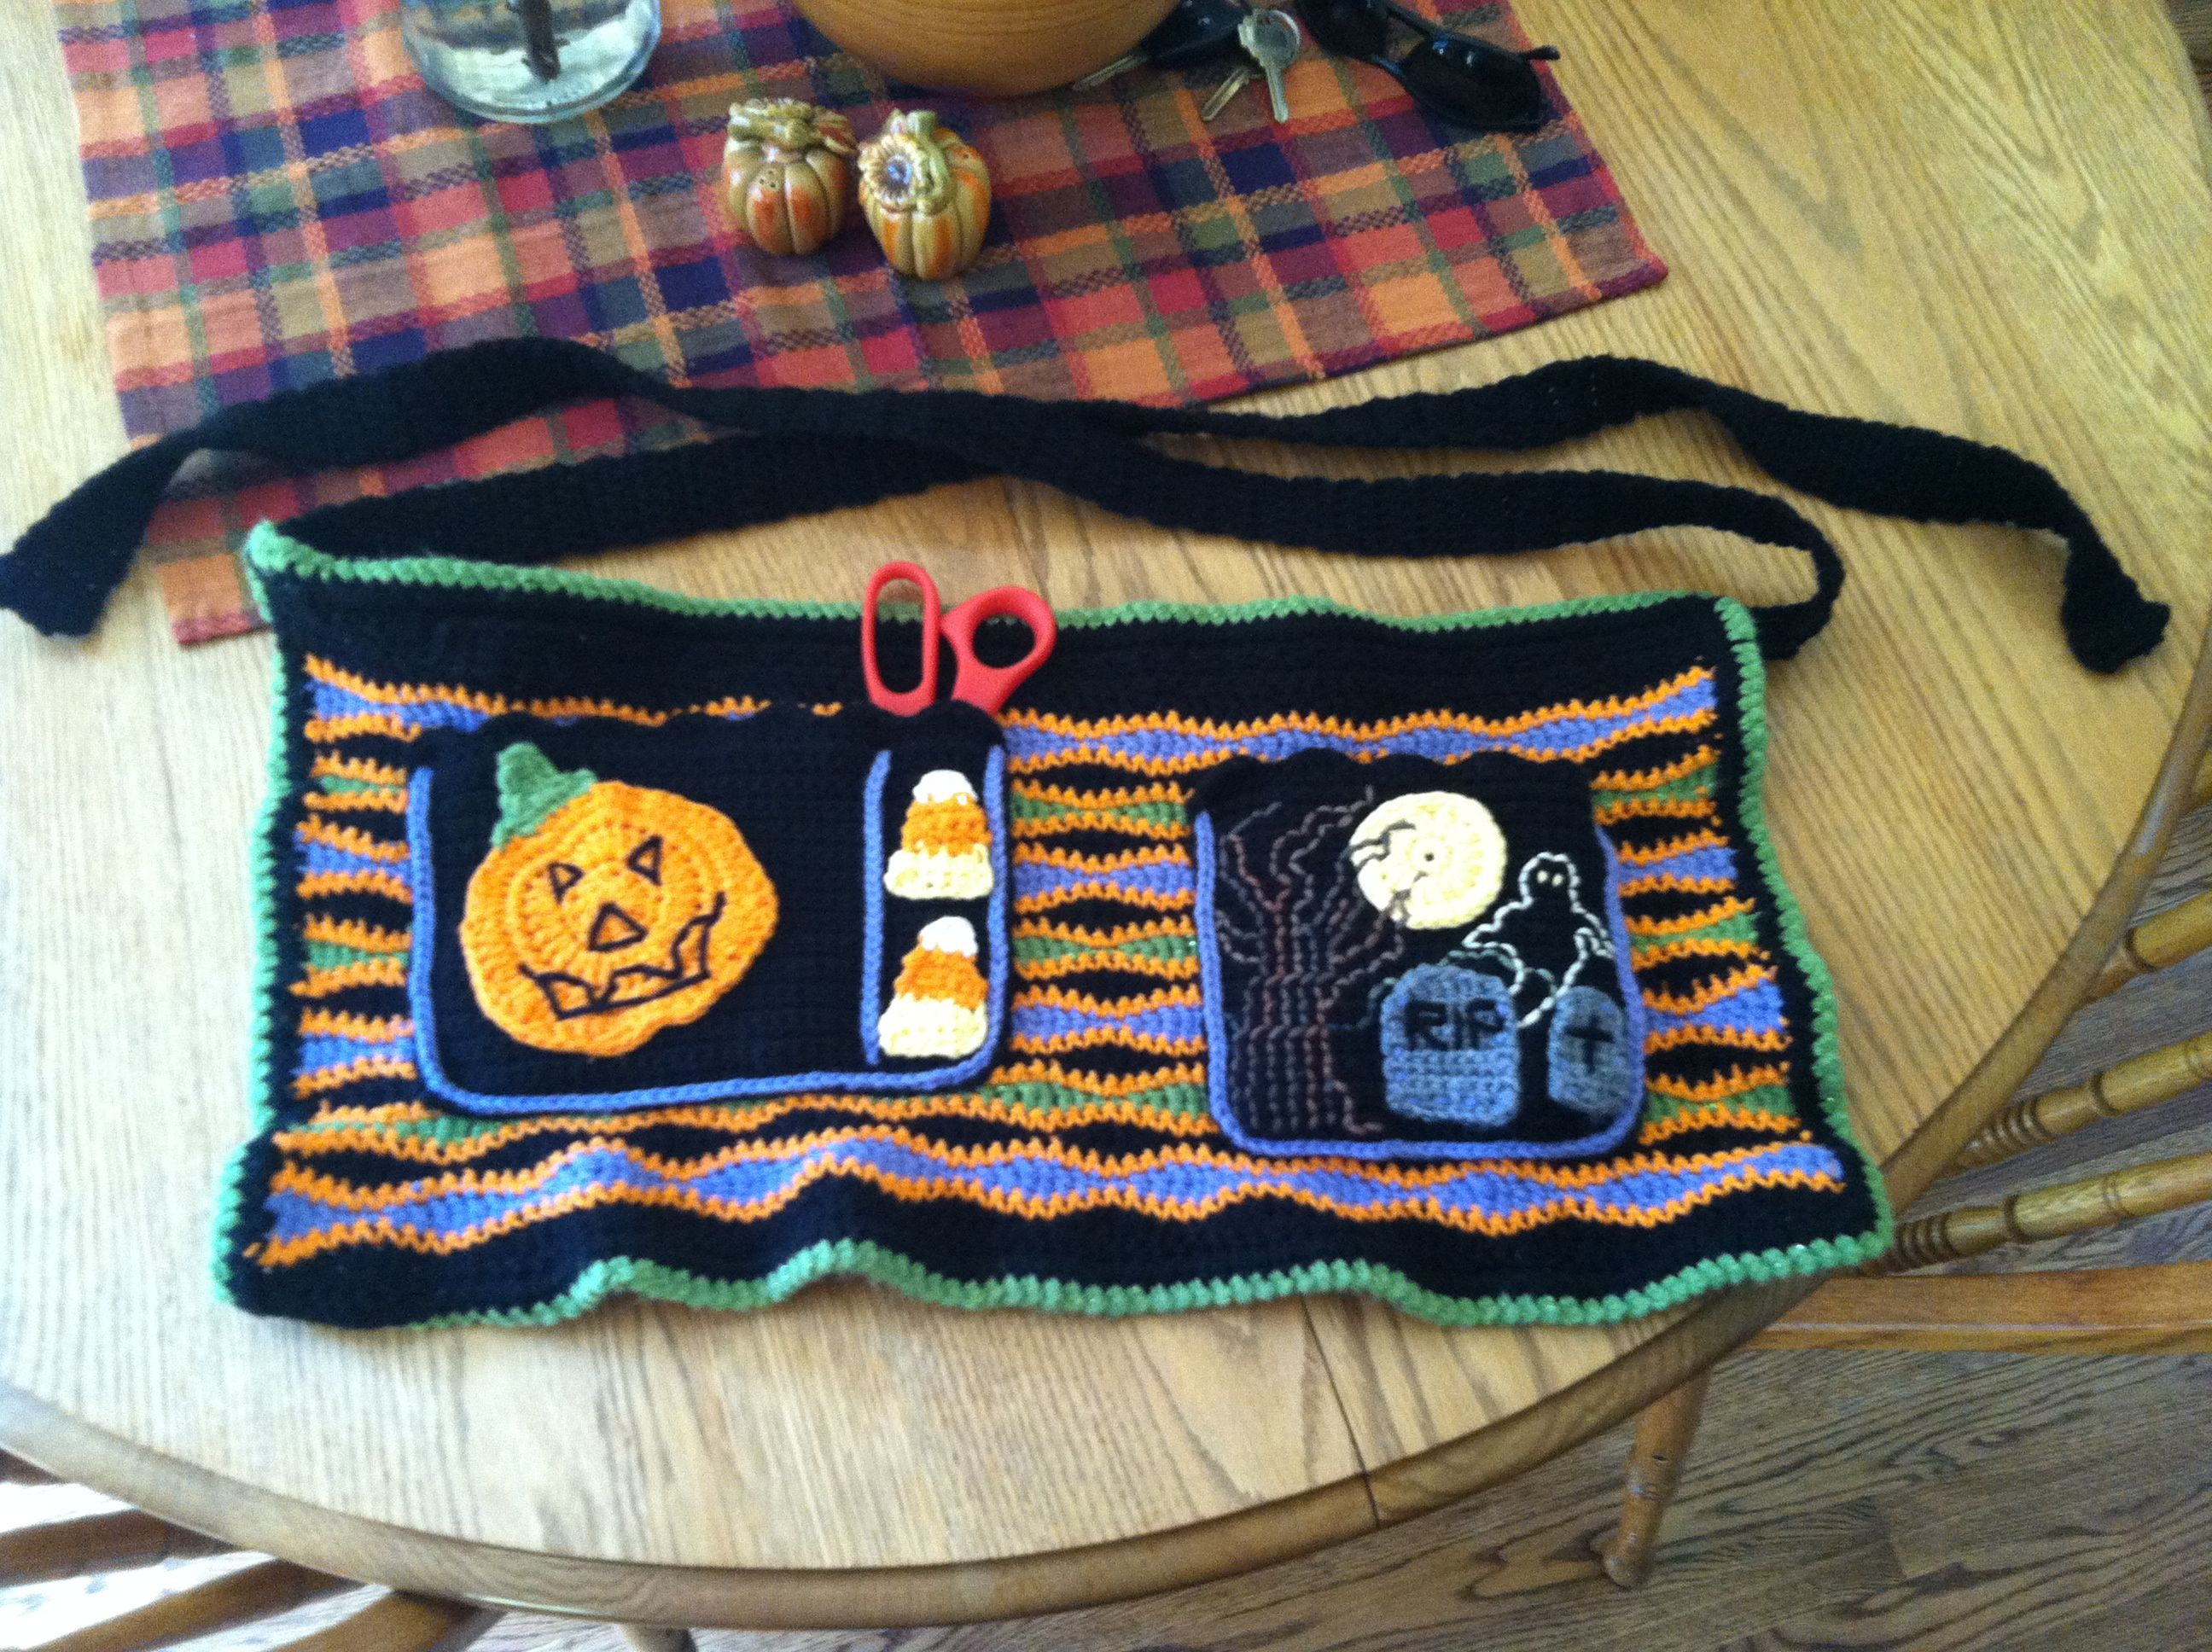 A Halloween Utility Apron that I made to use at work. :)